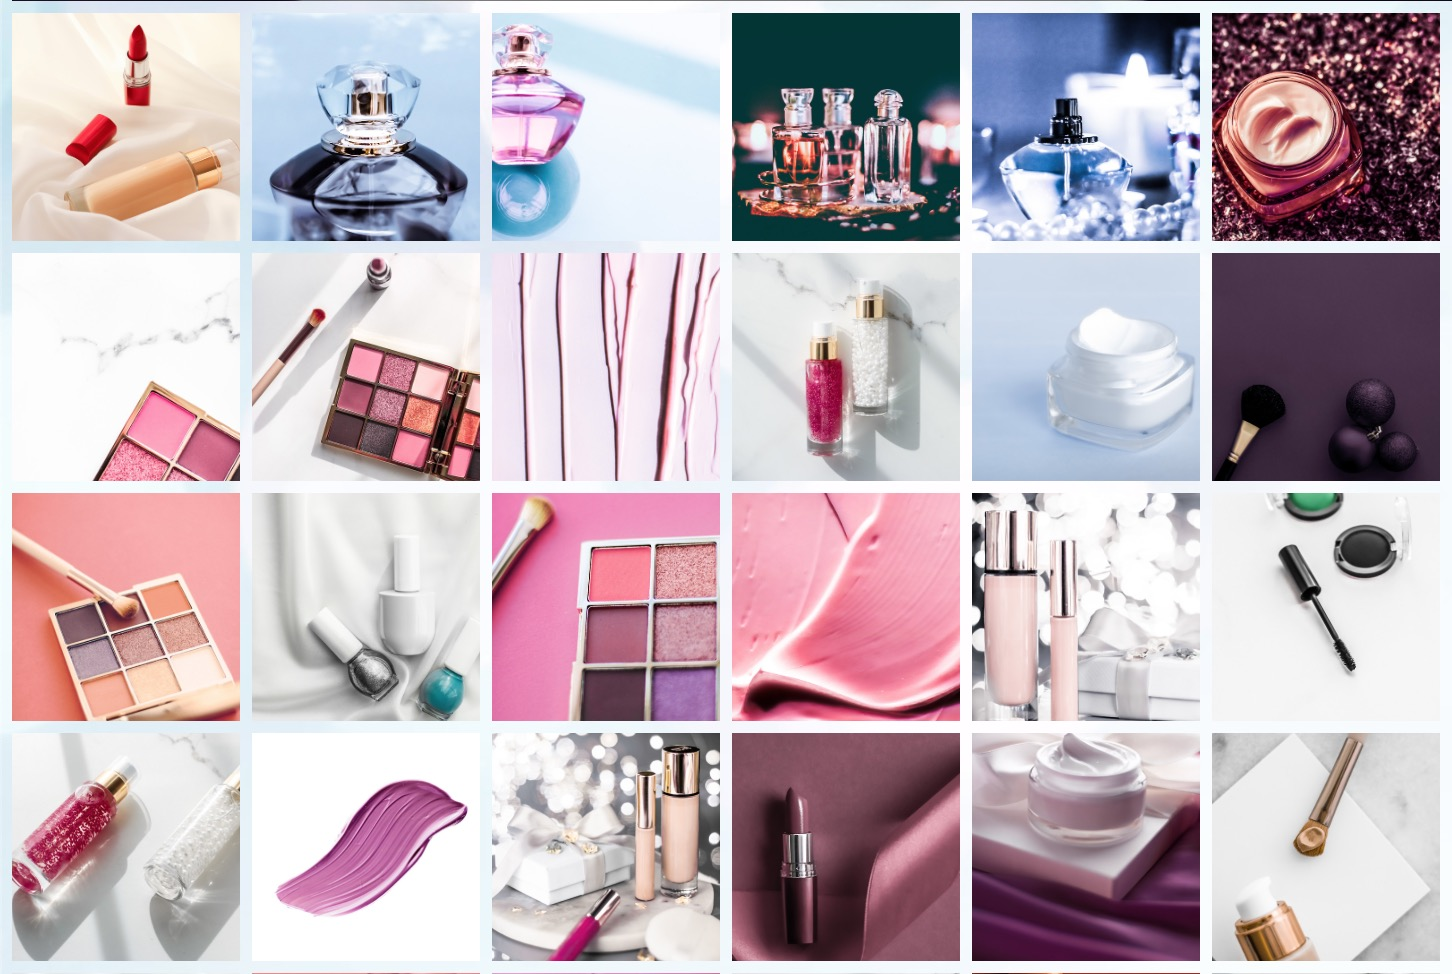 50 Images | Beauty & Make-Up Stock Photo Bundle #1 example image 1